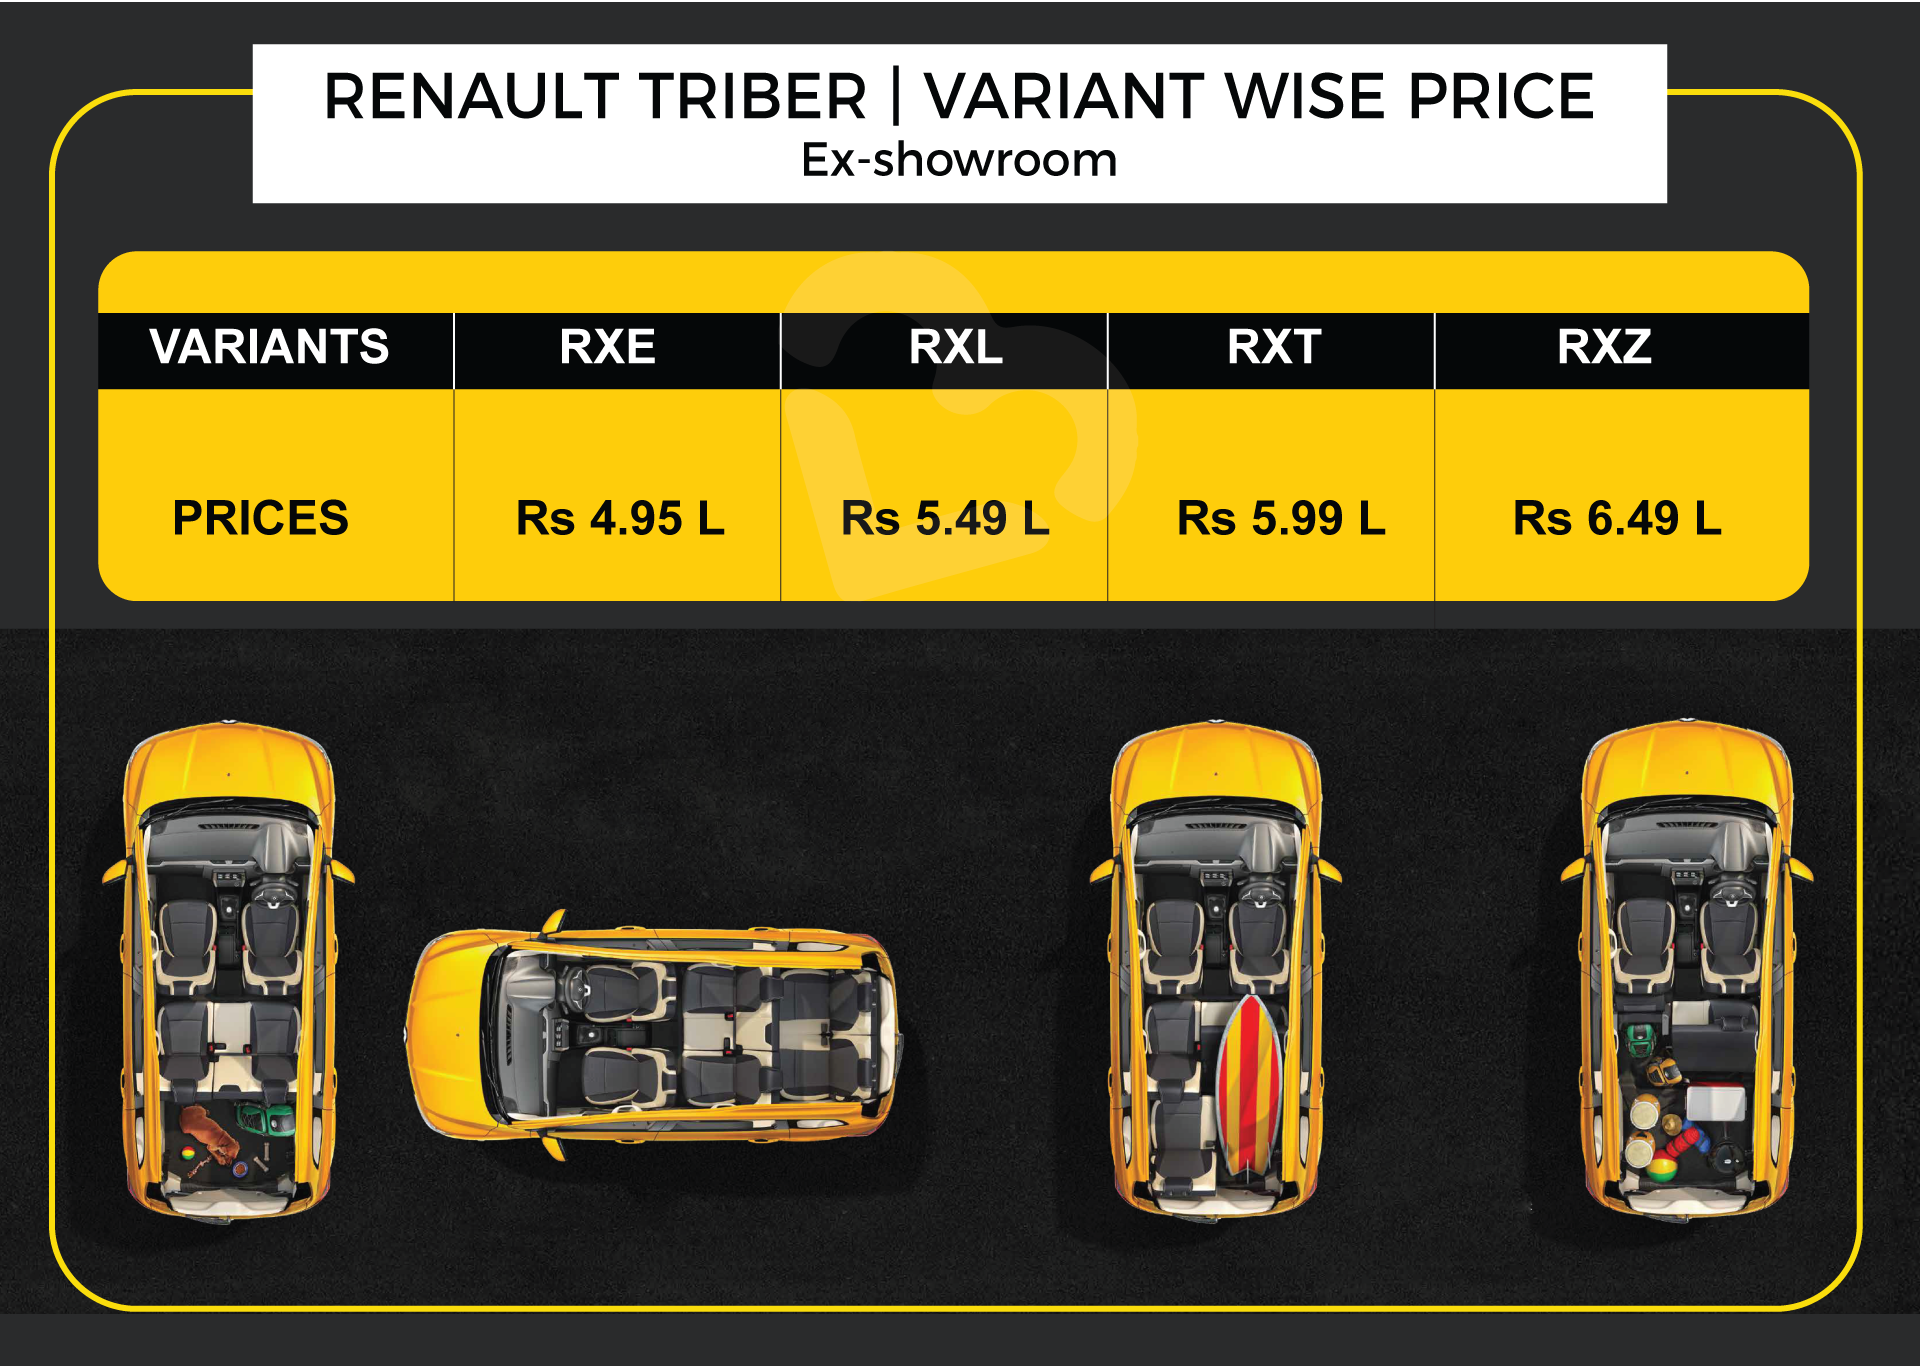 Variant Wise Price